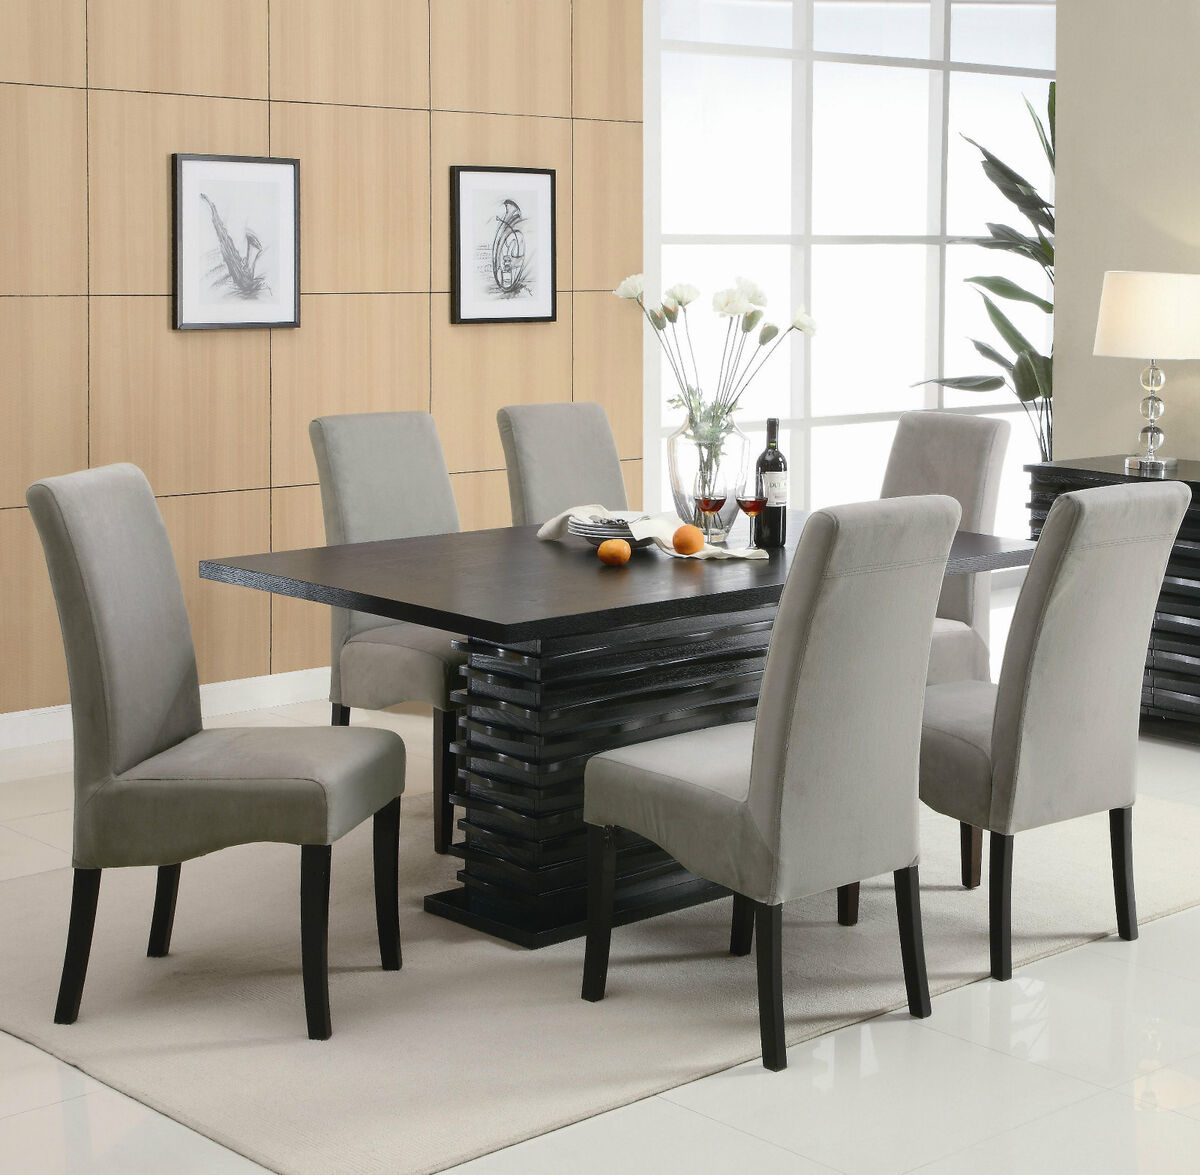 Dining table furniture contemporary dining table chairs for Modern dining room table sets